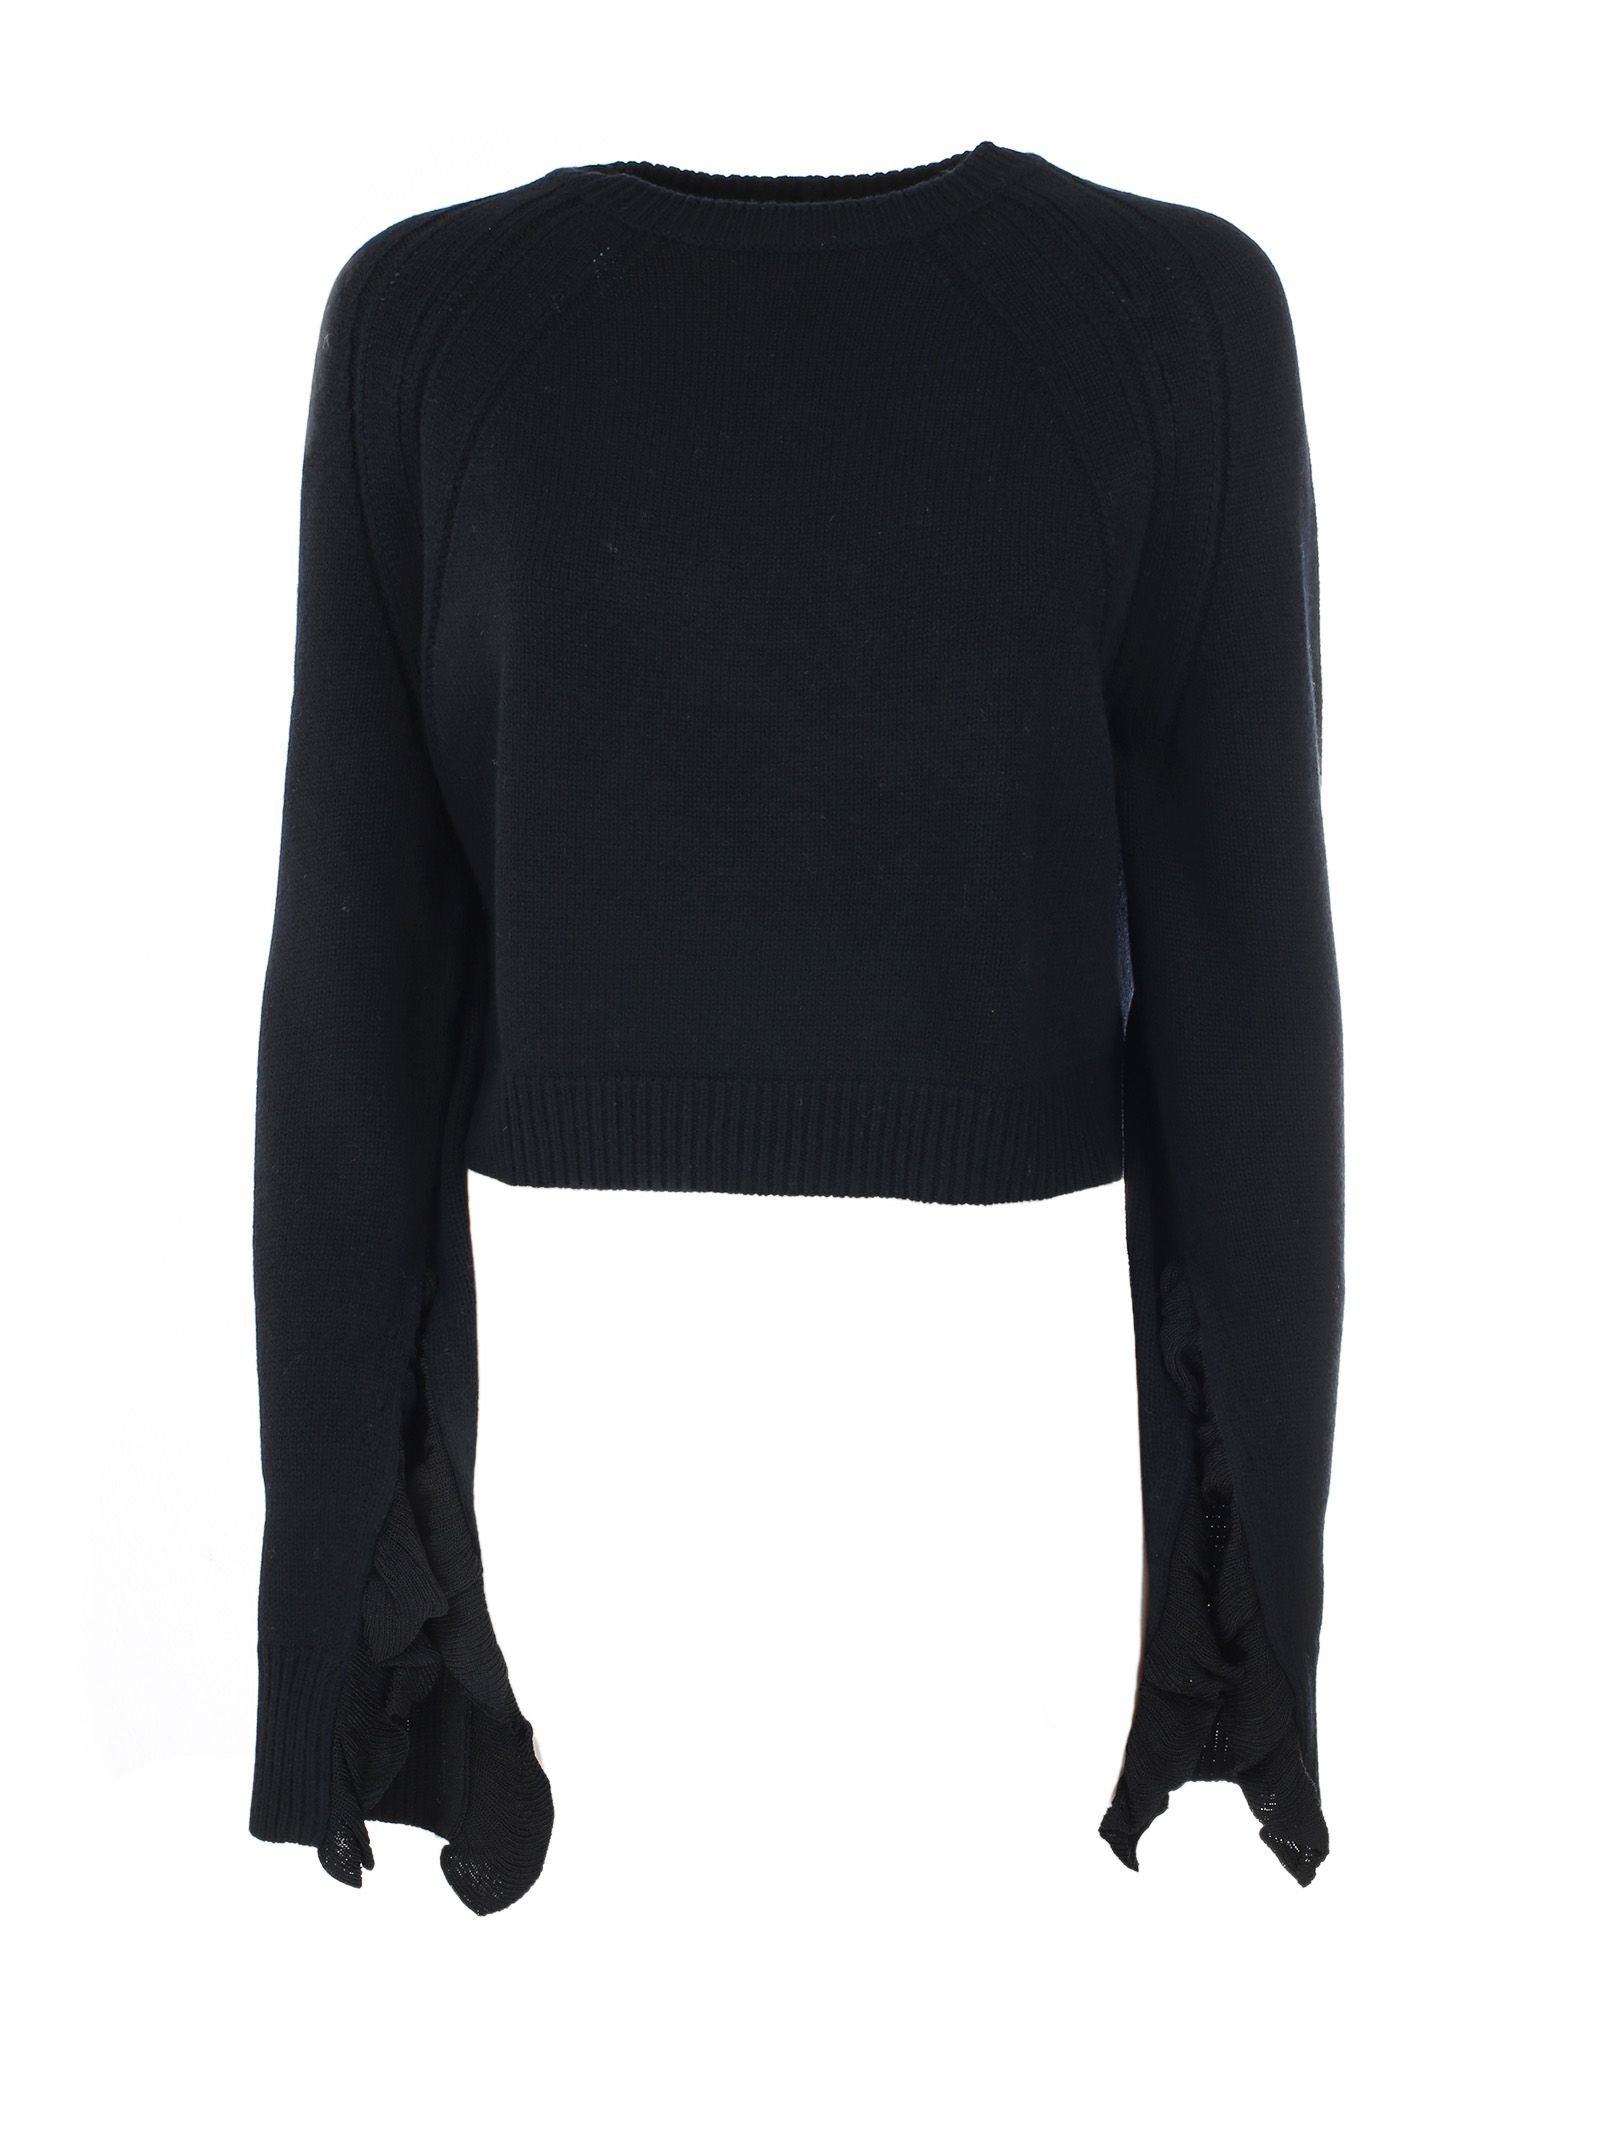 Helmut Lang Cropped Ruffled Sweater